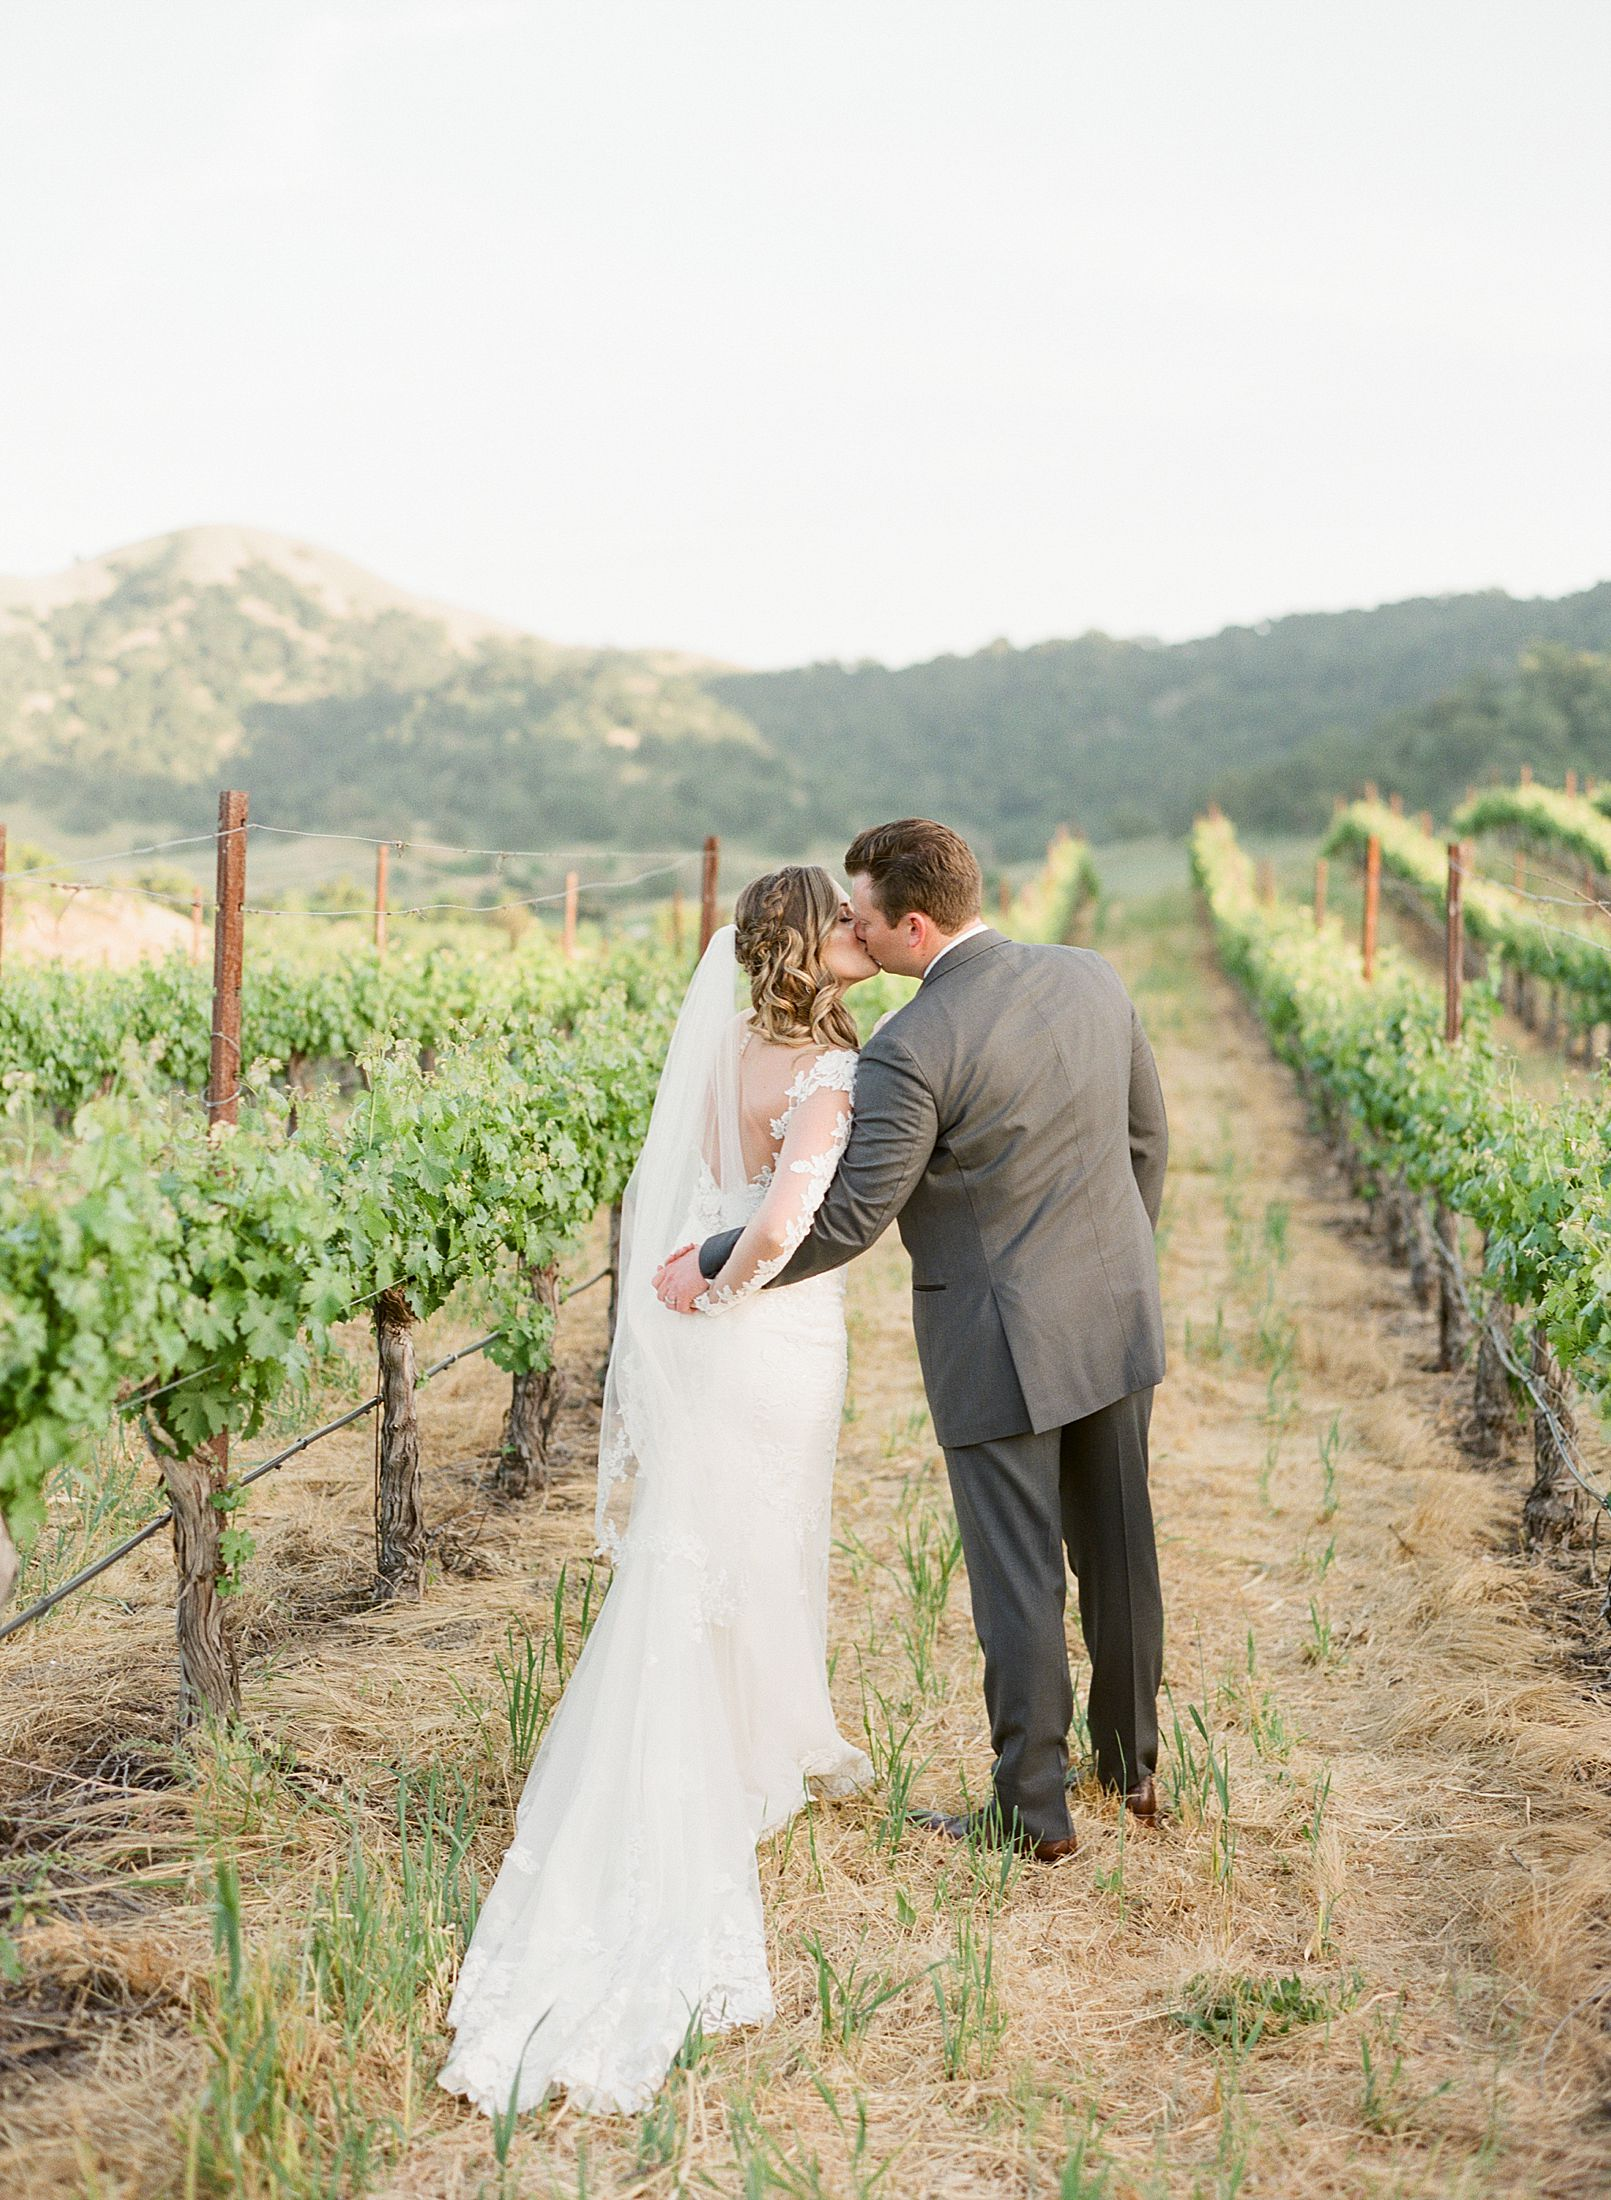 Clos LaChance Winery Wedding - Ashley Baumgartner - Kat & Kurt - Morgan Hill Wedding - Winery Wedding - Bay Area Photographer - Sacramento Wedding Photographer_0056.jpg